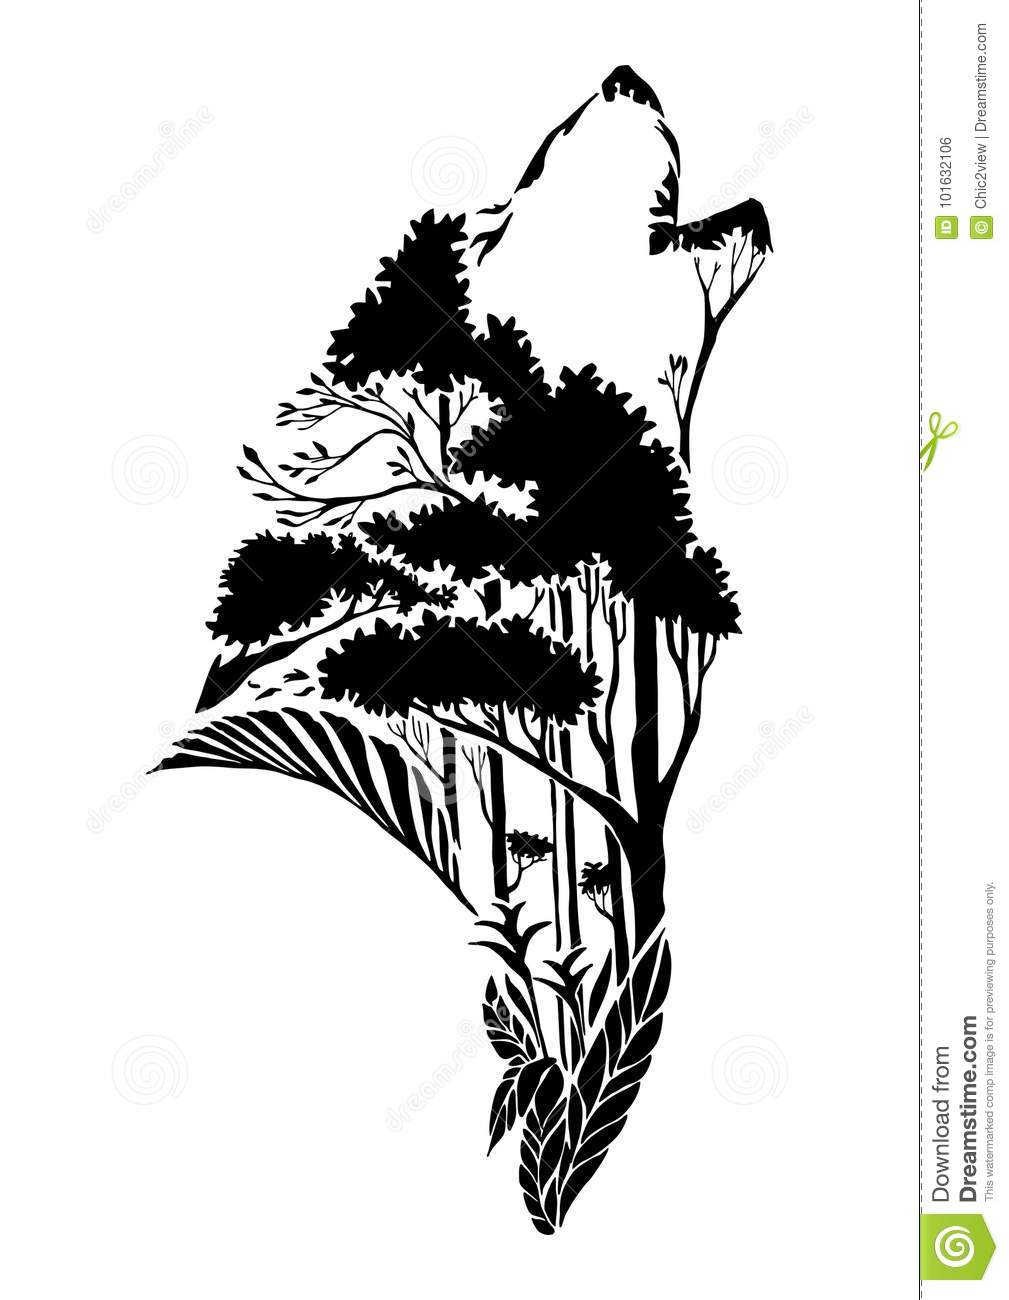 43c83f91a7084 Wolf Tattoo Stock Illustrations – 3,875 Wolf Tattoo Stock Illustrations,  Vectors & Clipart - Dreamstime - Page 2